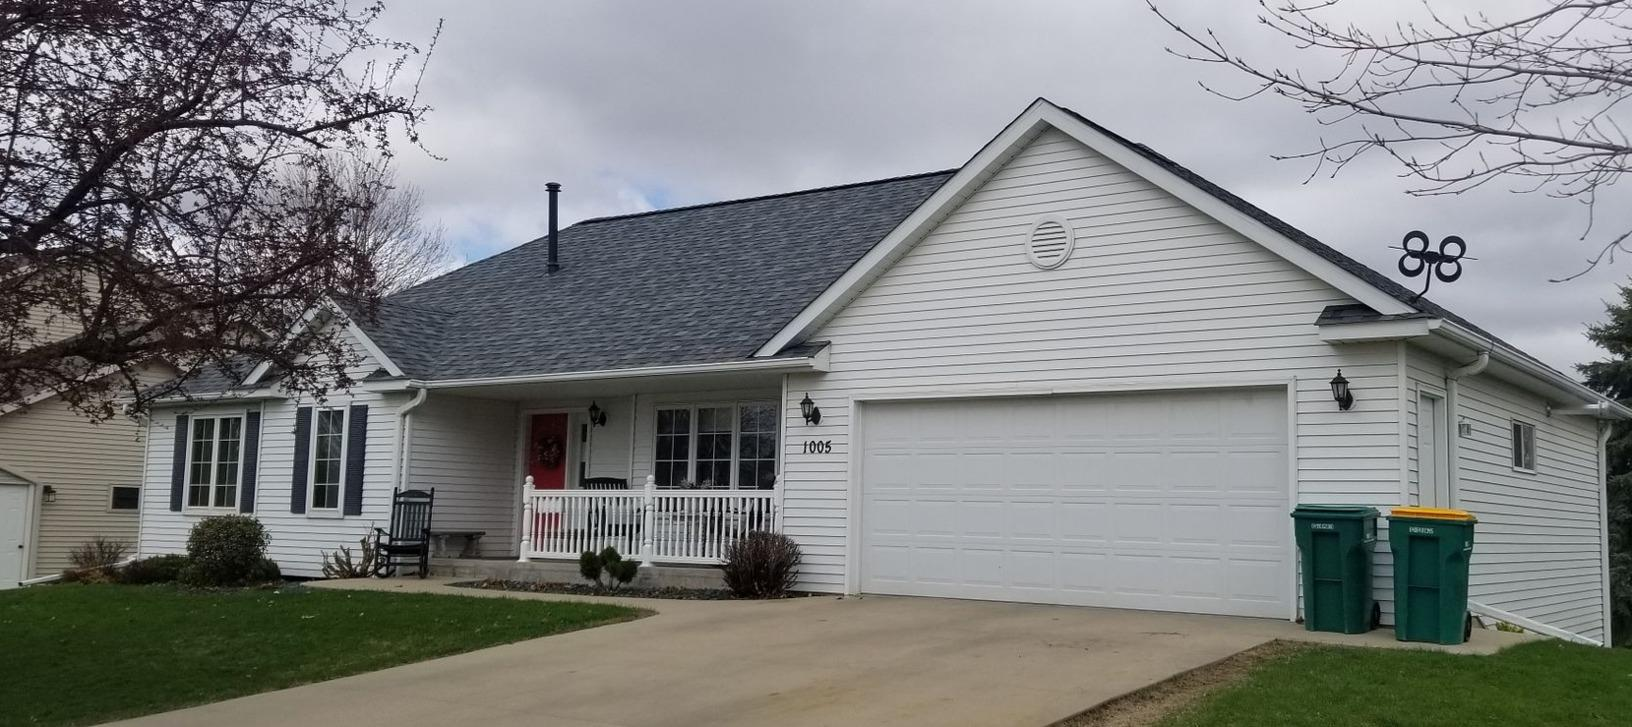 Roofing and Siding Replacement in Kasson, MN - Before Photo